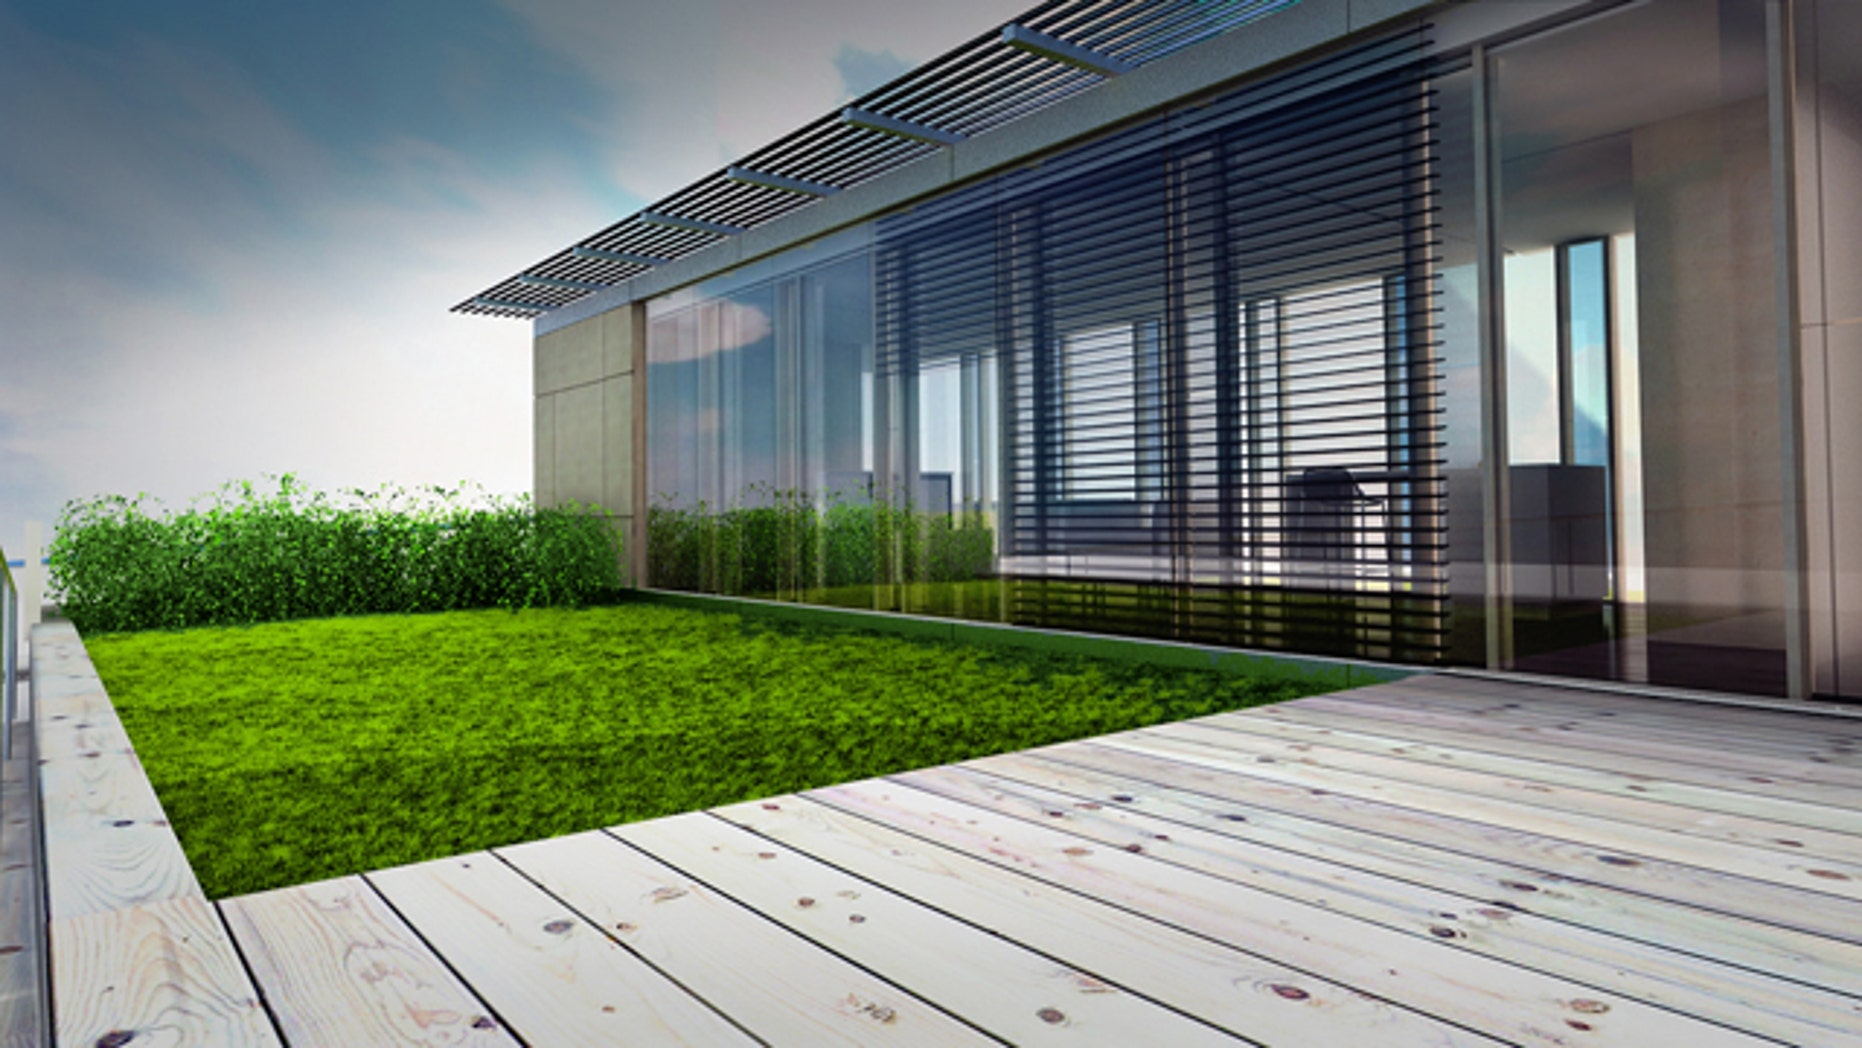 The Living Light concept house by the University of Tennessee -- an entire home constructed to highlight the best uses of solar power -- is just one entry in the 2011 Solar Decathlon.